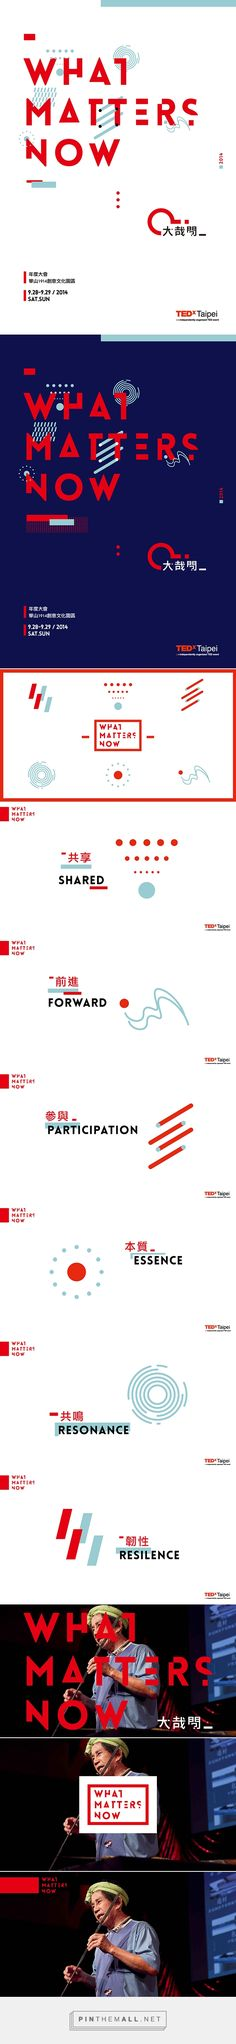 TEDxTaipei 2014 Pitch on Behance